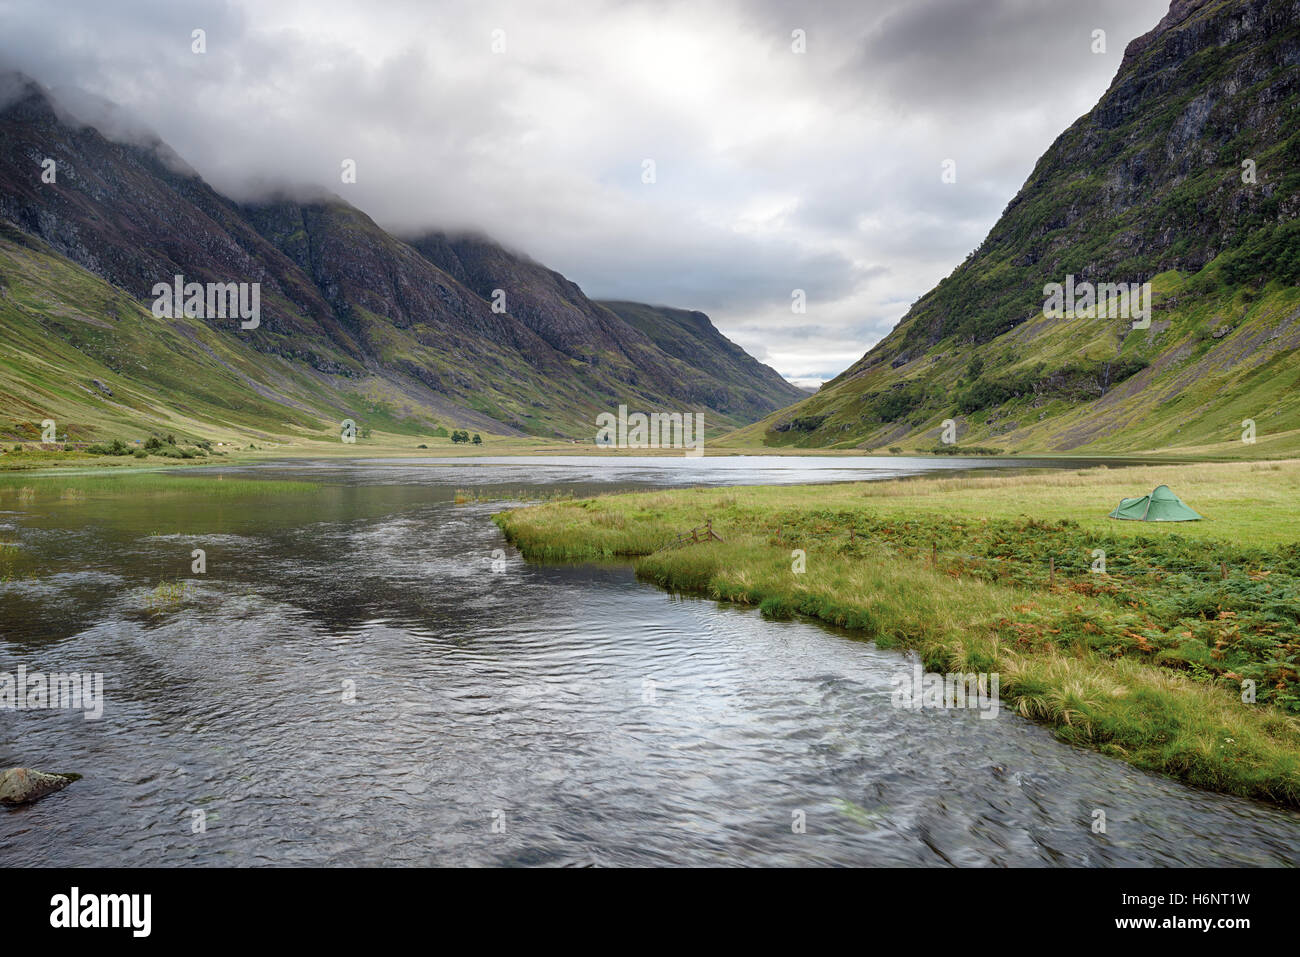 A tent on the shores of Loch Achtriochtan at Glencoe in the highlands of Scotland - Stock Image